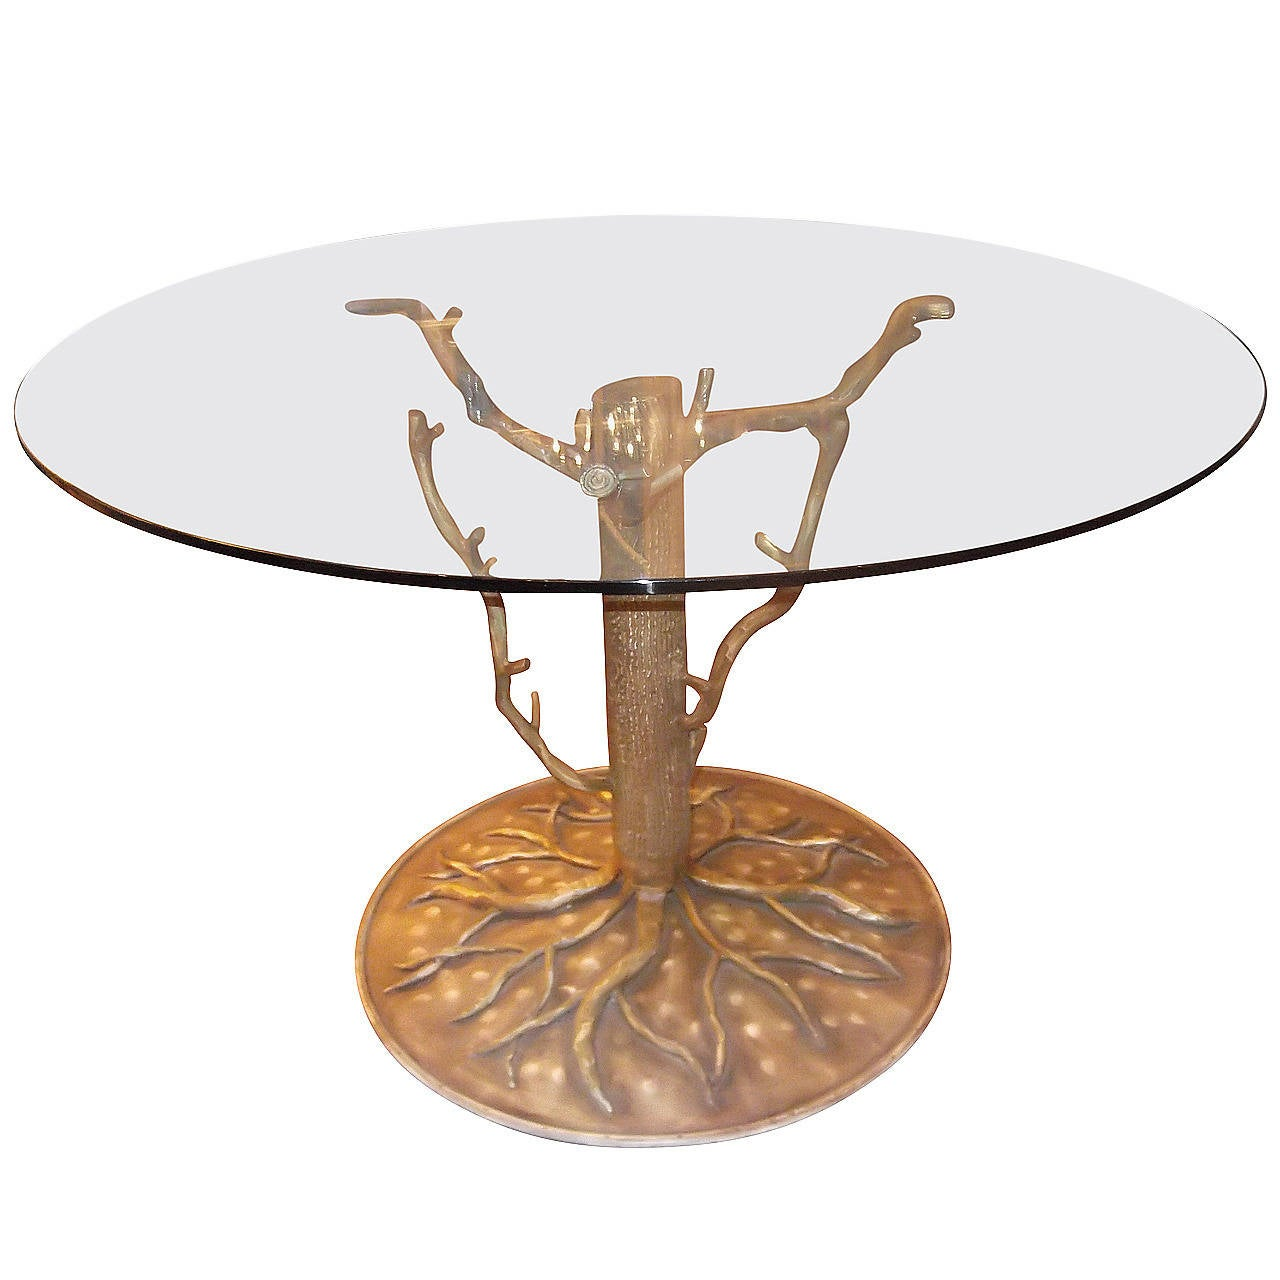 Michael taylor cyprus tree trunk dining table at 1stdibs - Striking Very Large Organic Tree Sculpture Table Base 1